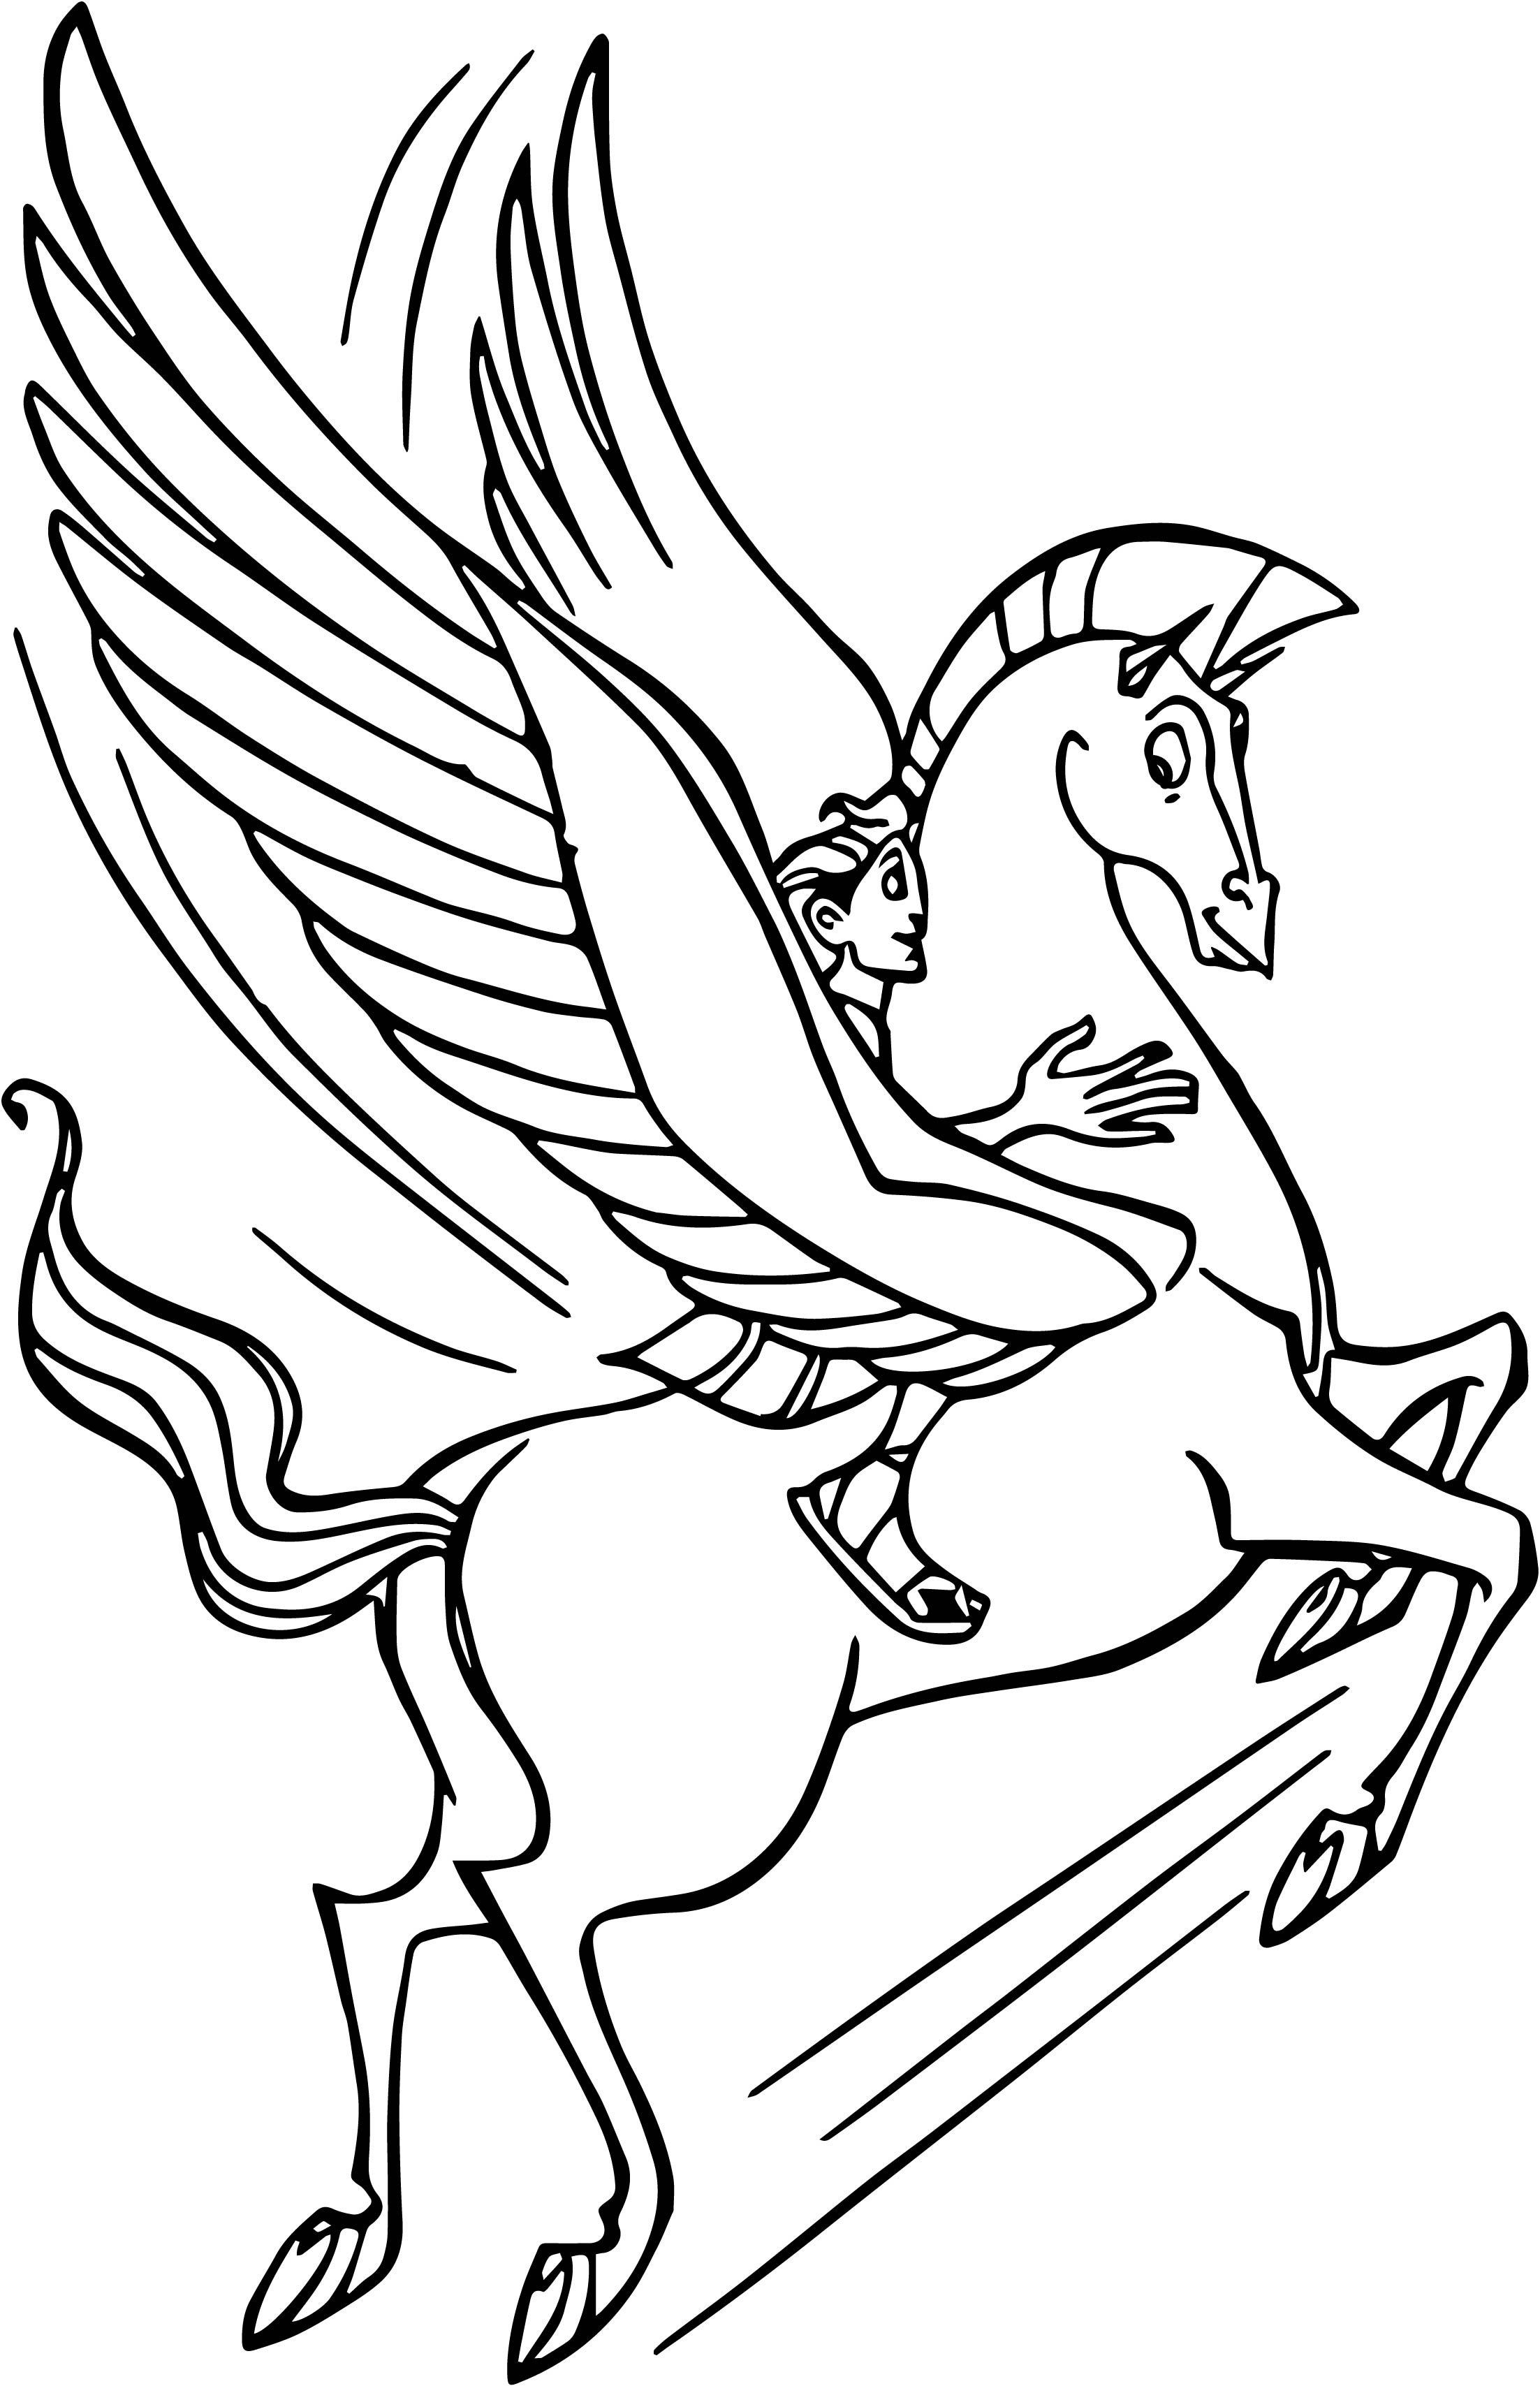 Hercules and pegasus flying coloring pages for Coloring pages of pegasus